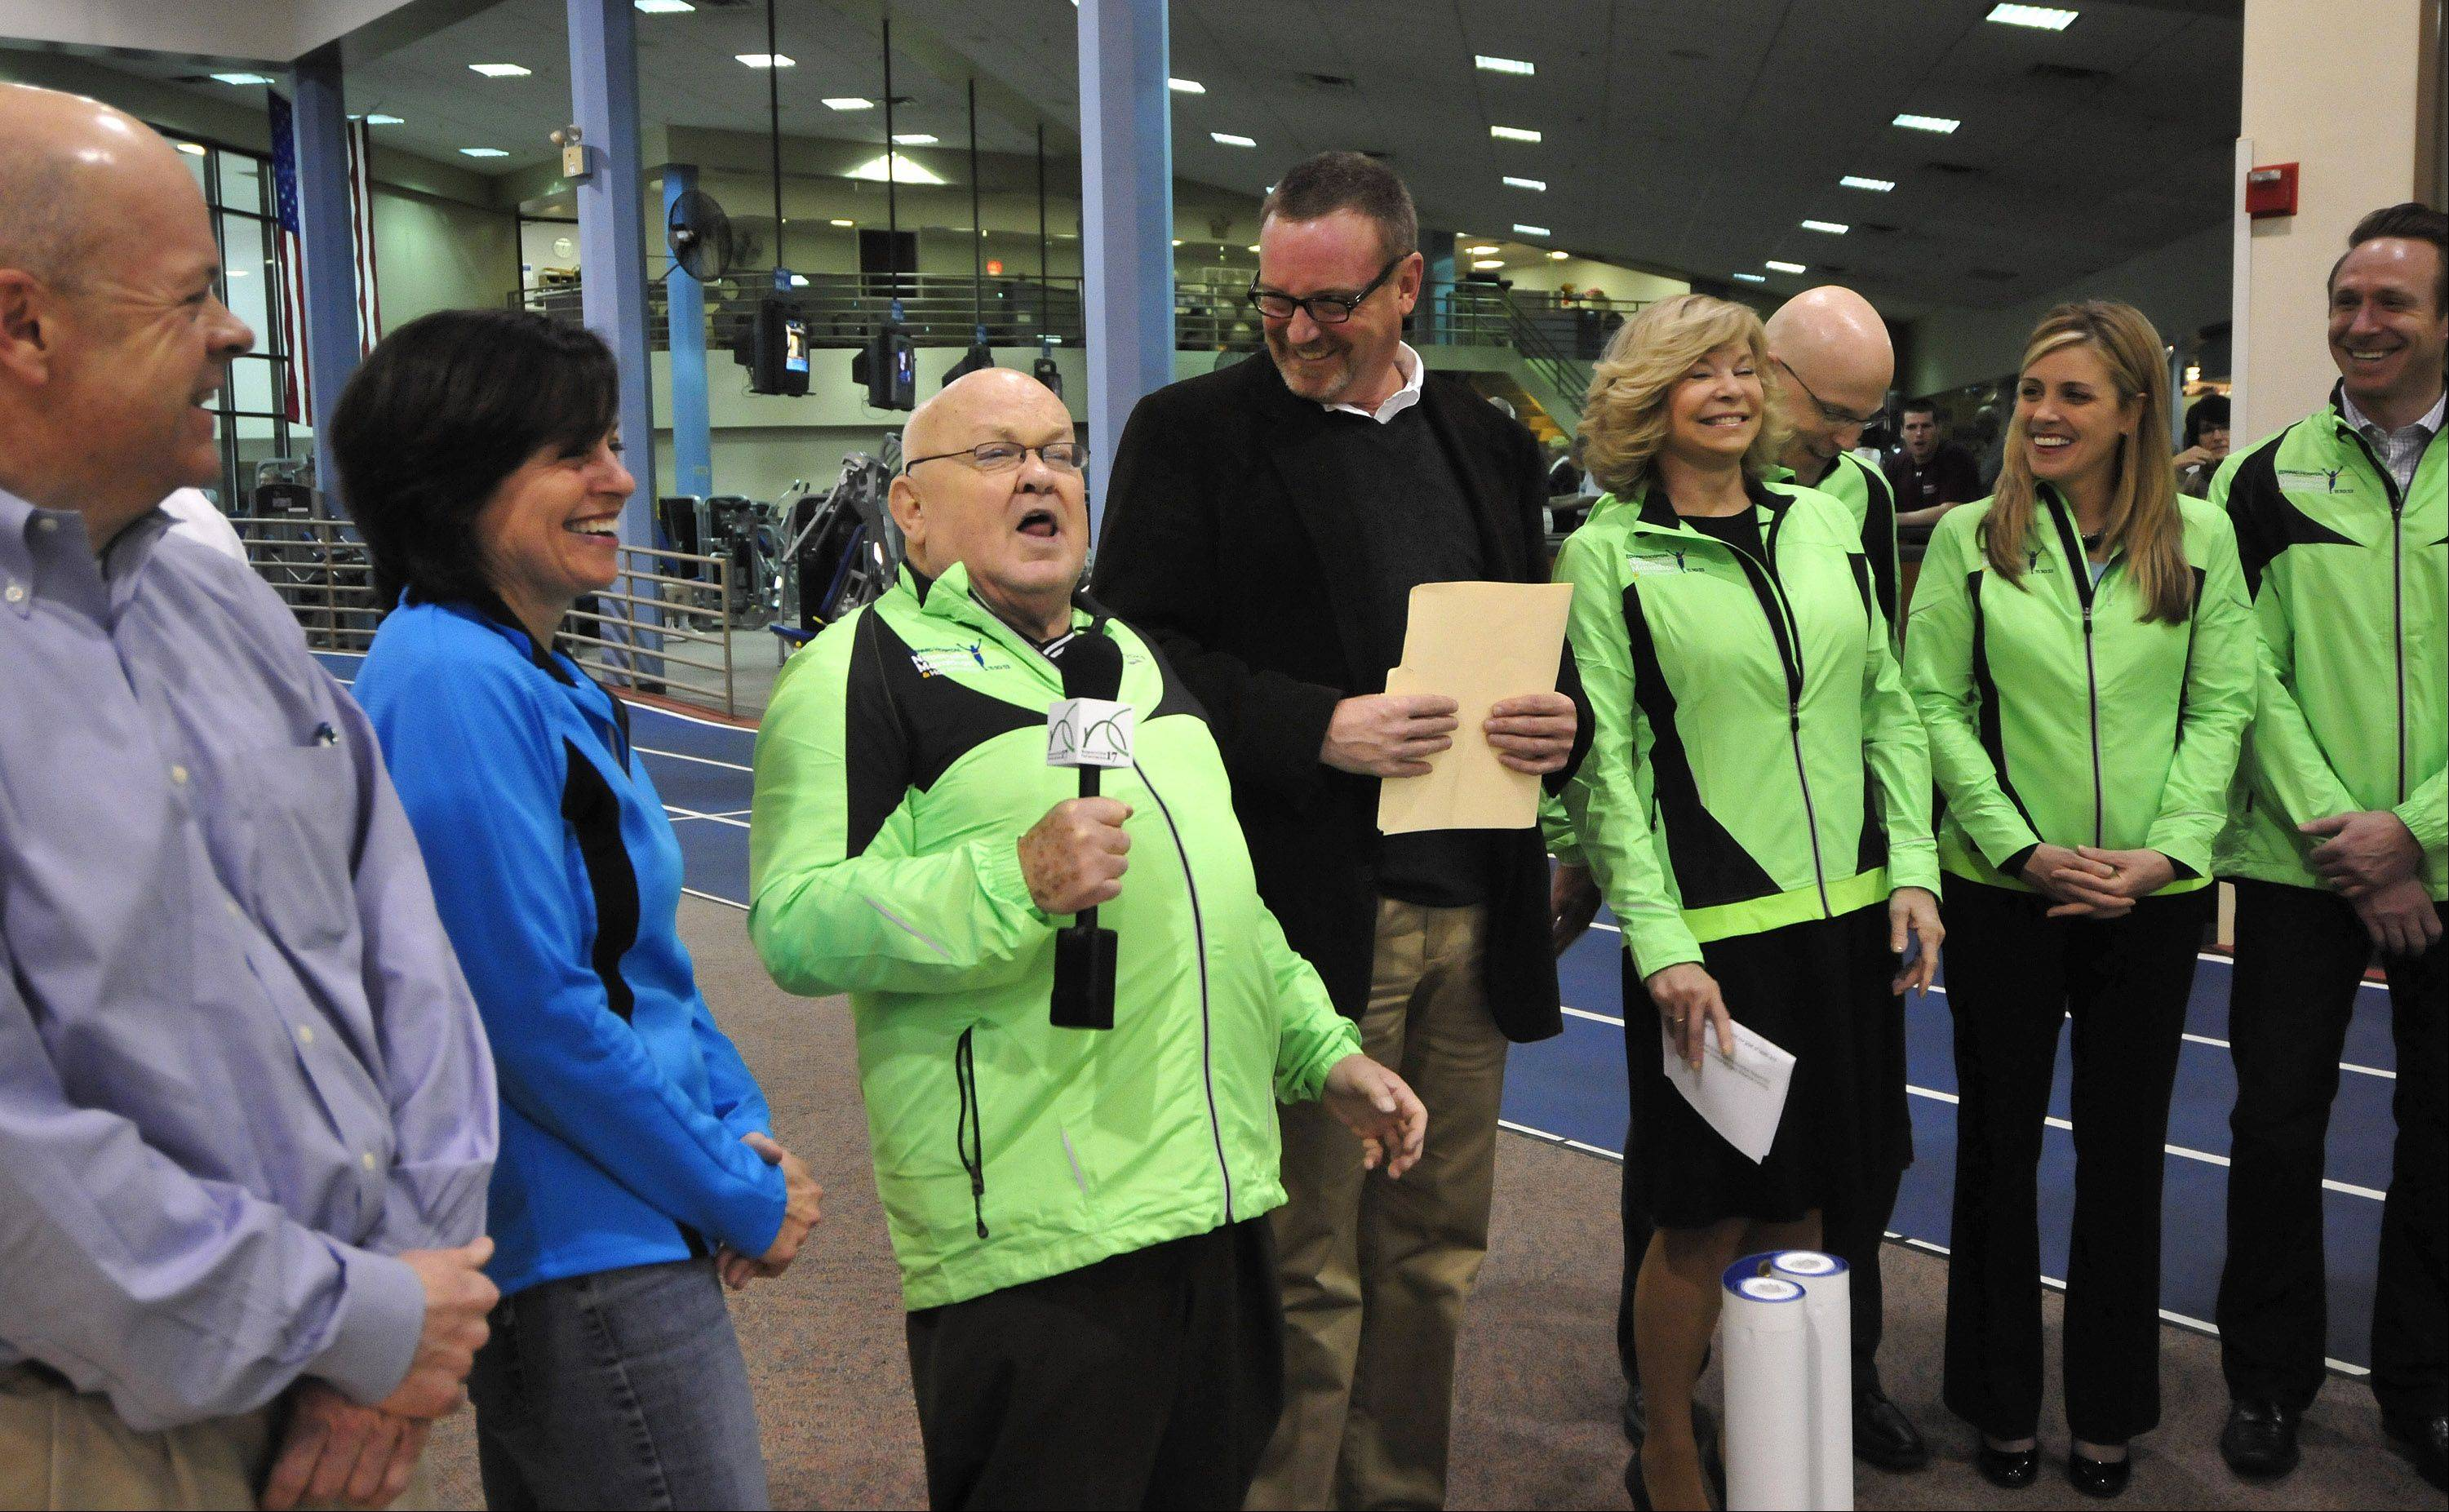 Naperville Mayor George Pradel announces during a ceremony in March that Edward Hospital will be the title sponsor for the inaugural Naperville Marathon and Half Marathon to be held Sunday. Other businesses are getting involved in the marathon by opening early, live-streaming the race on NCTV-17, offering marathon weekend specials or signing on as race sponsors.